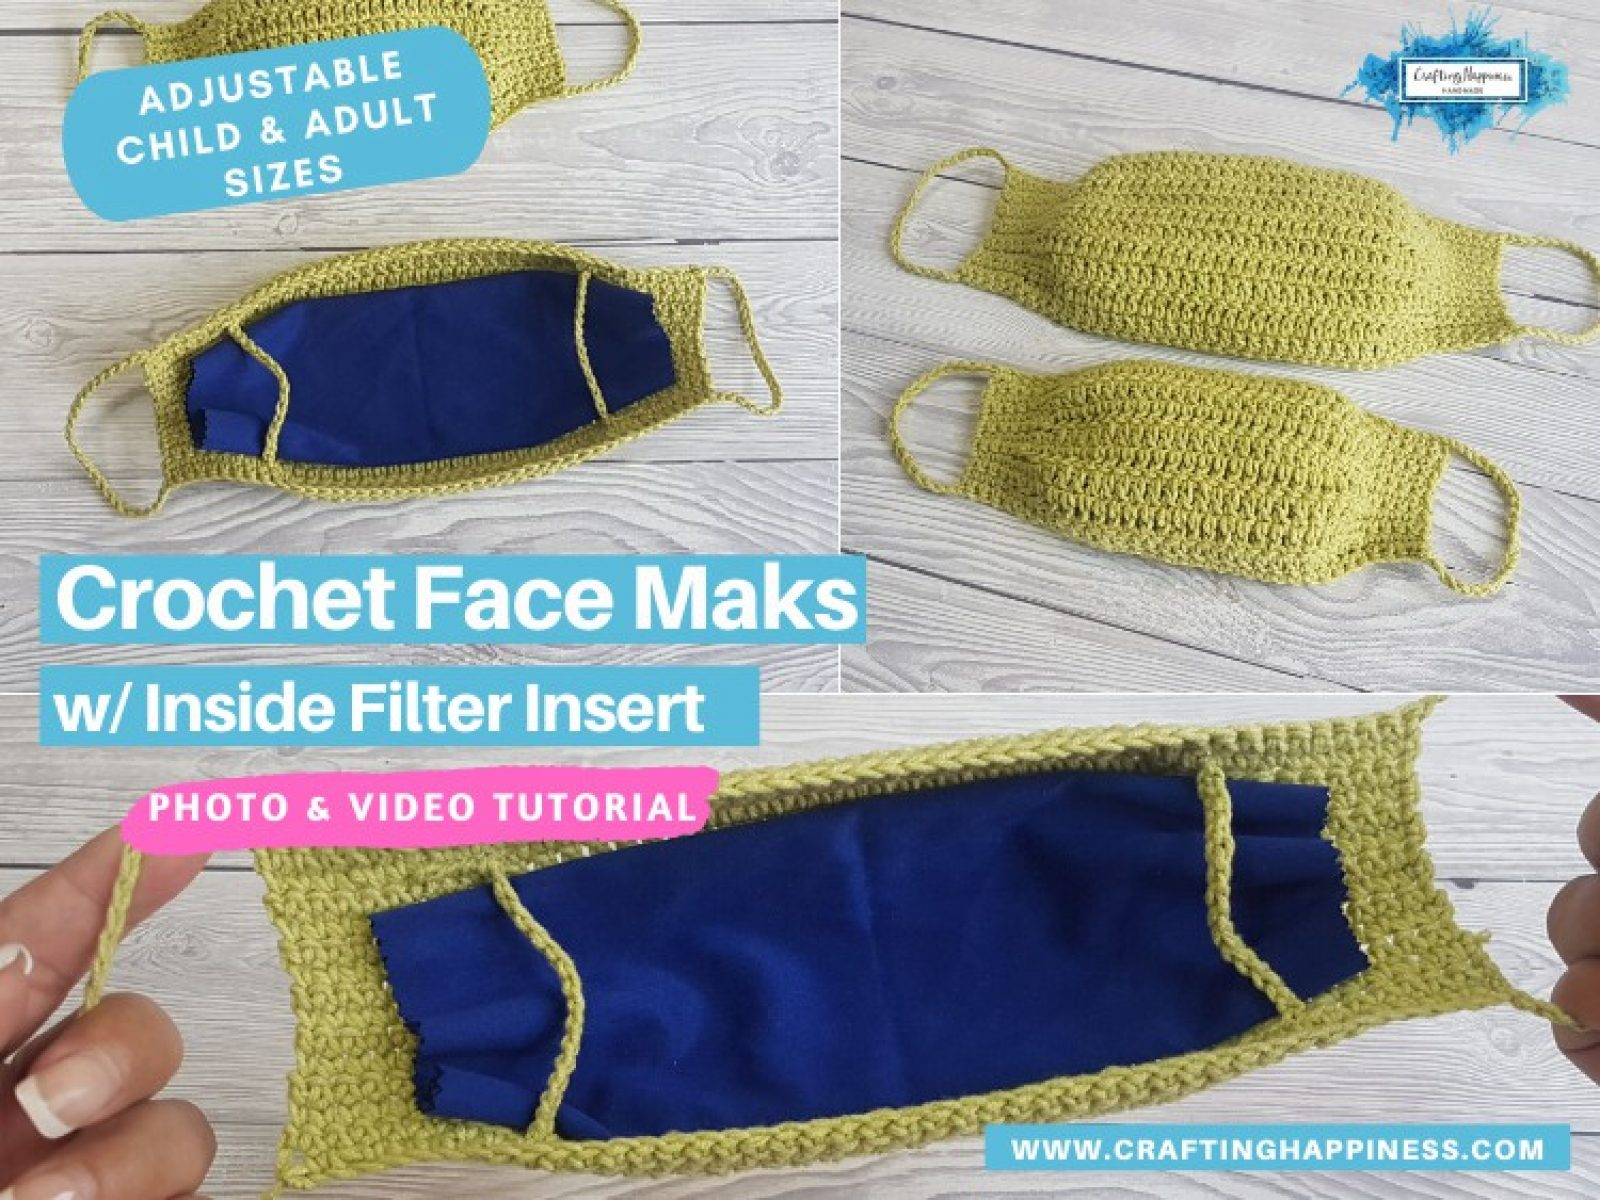 Crochet Face Mask With Filter Insert (Child & Adult)